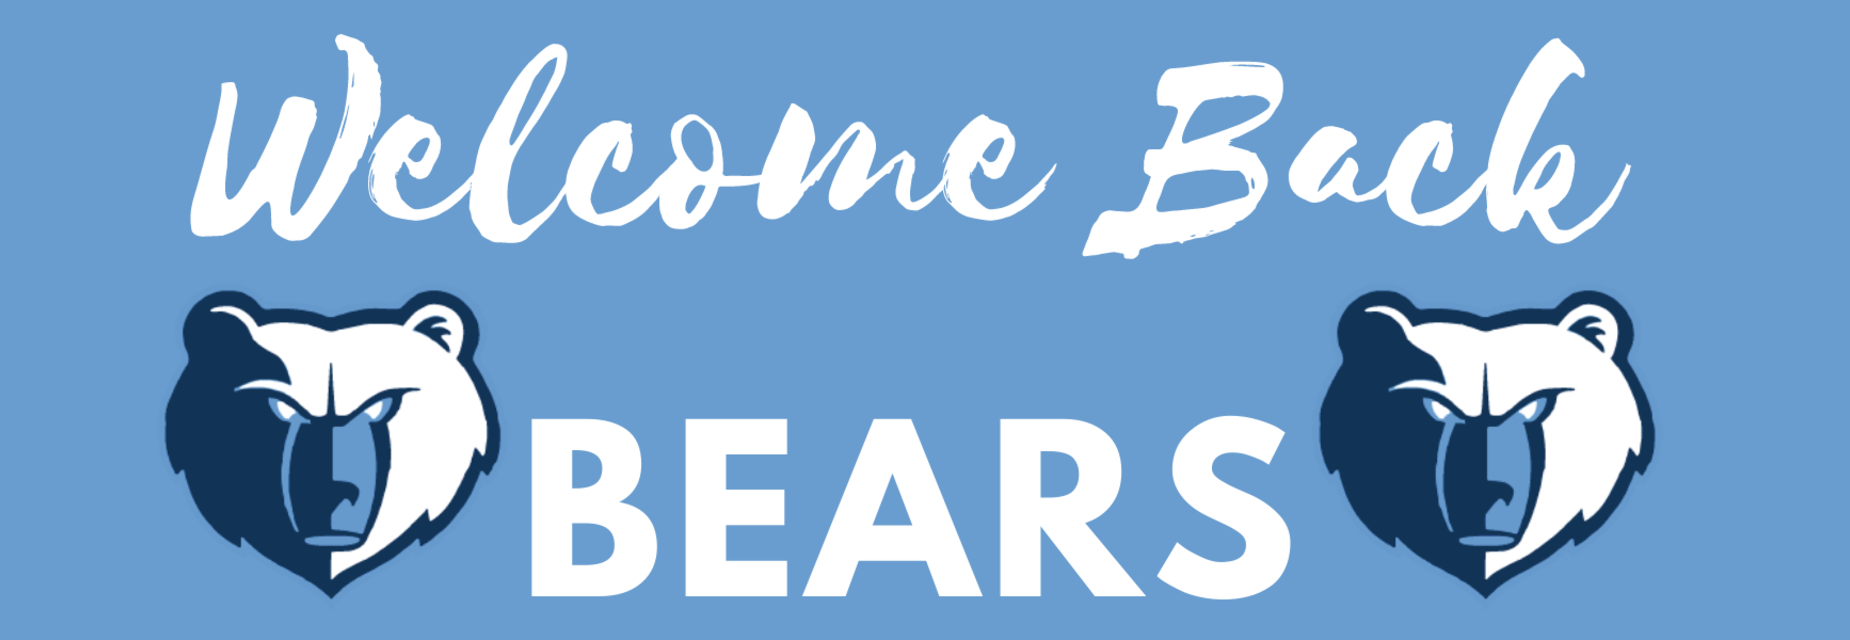 Welcome back bears